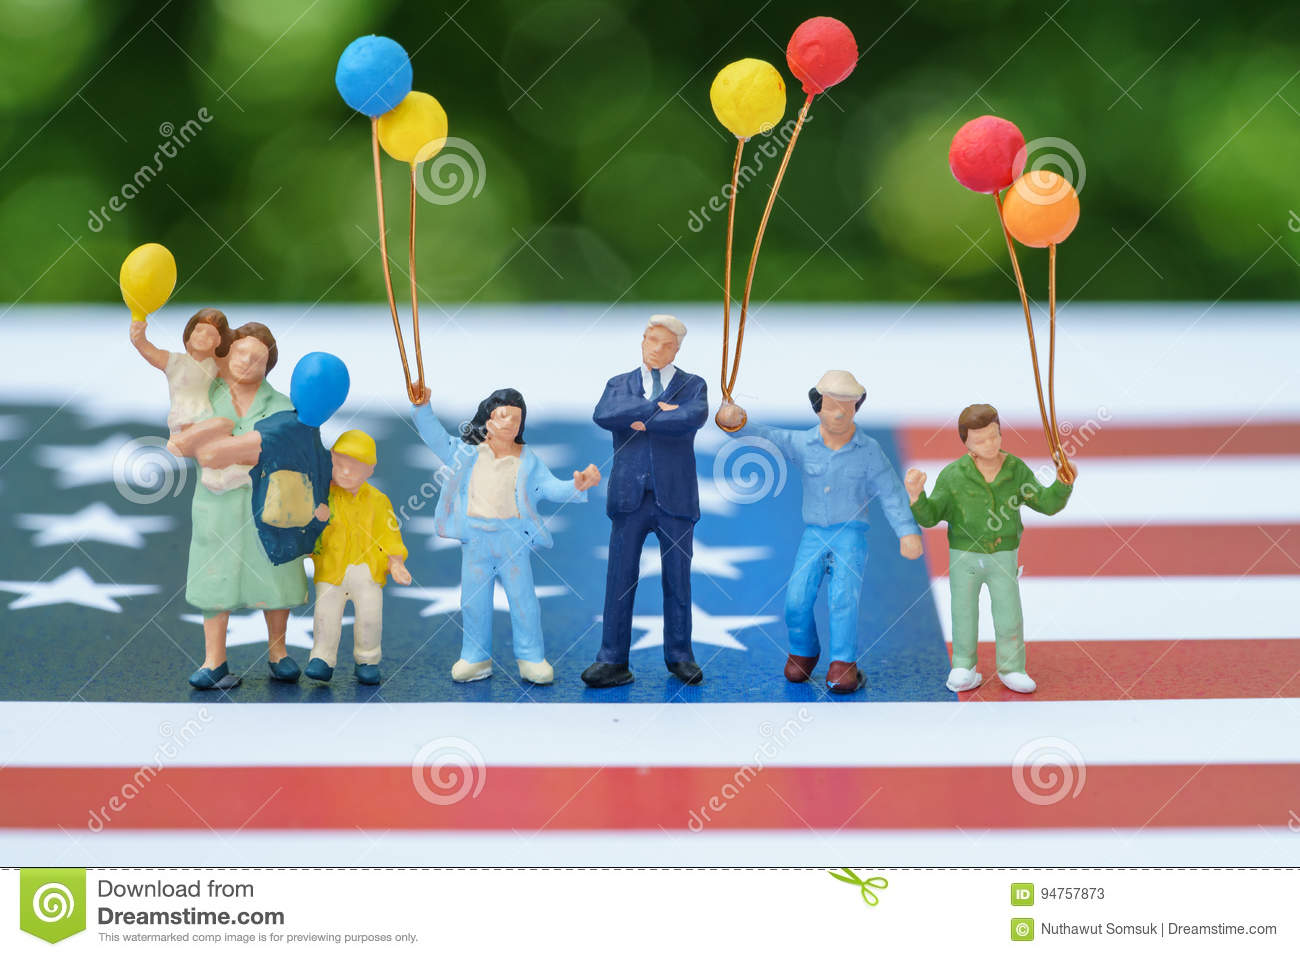 Miniature figure, happy american family holding balloon with Uni